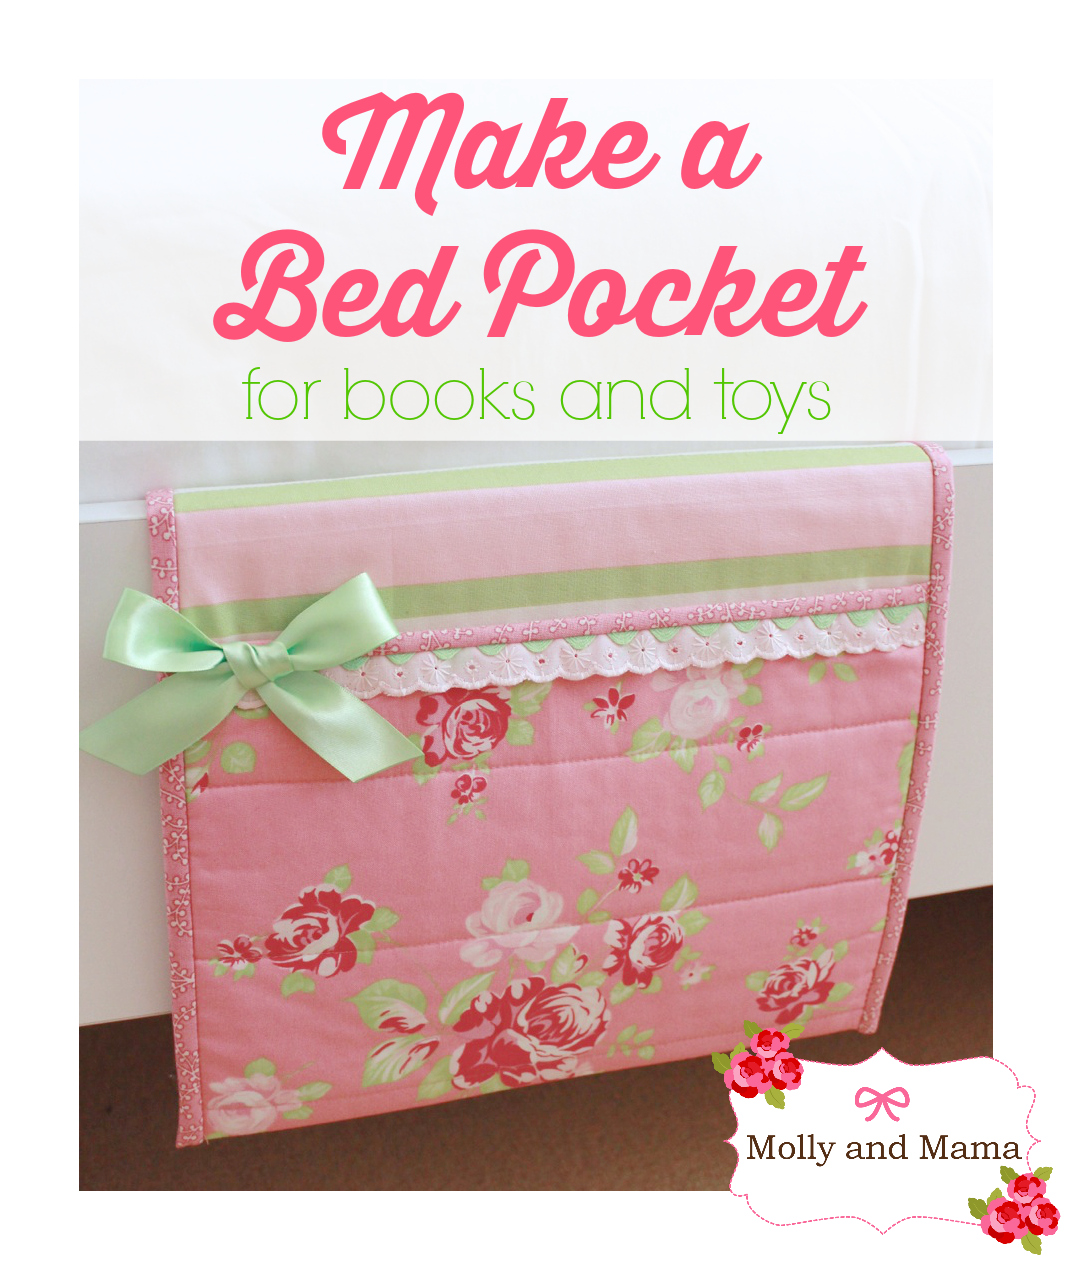 Make a Bed Pocket - a tutorial by Molly and Mama for www.SewMccool.com